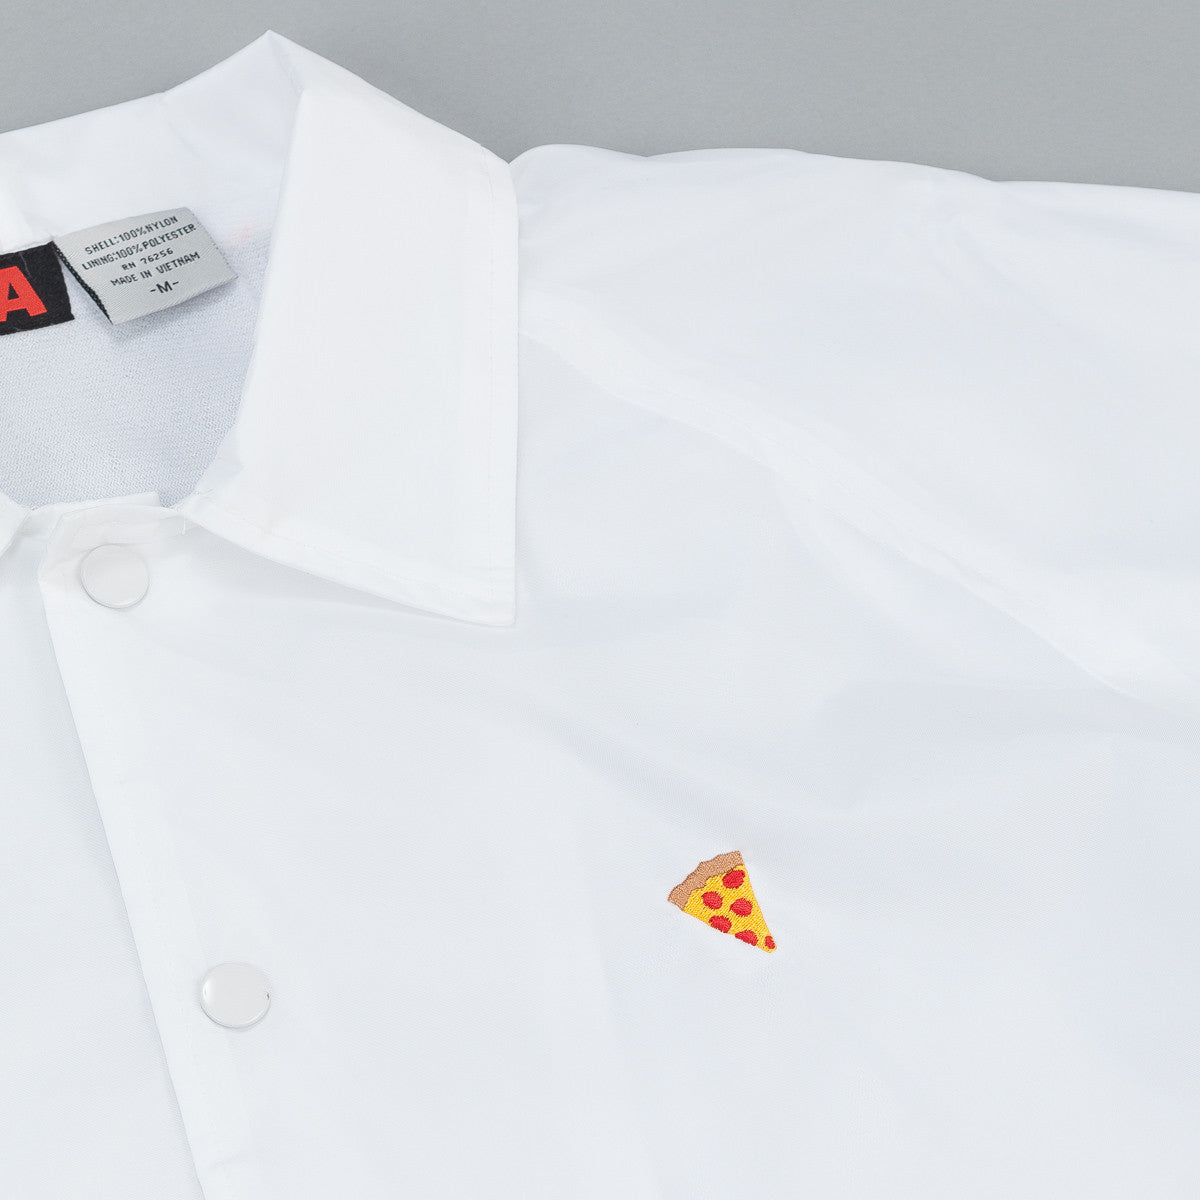 Pizza Skateboards Emoji Coaches Jacket - White